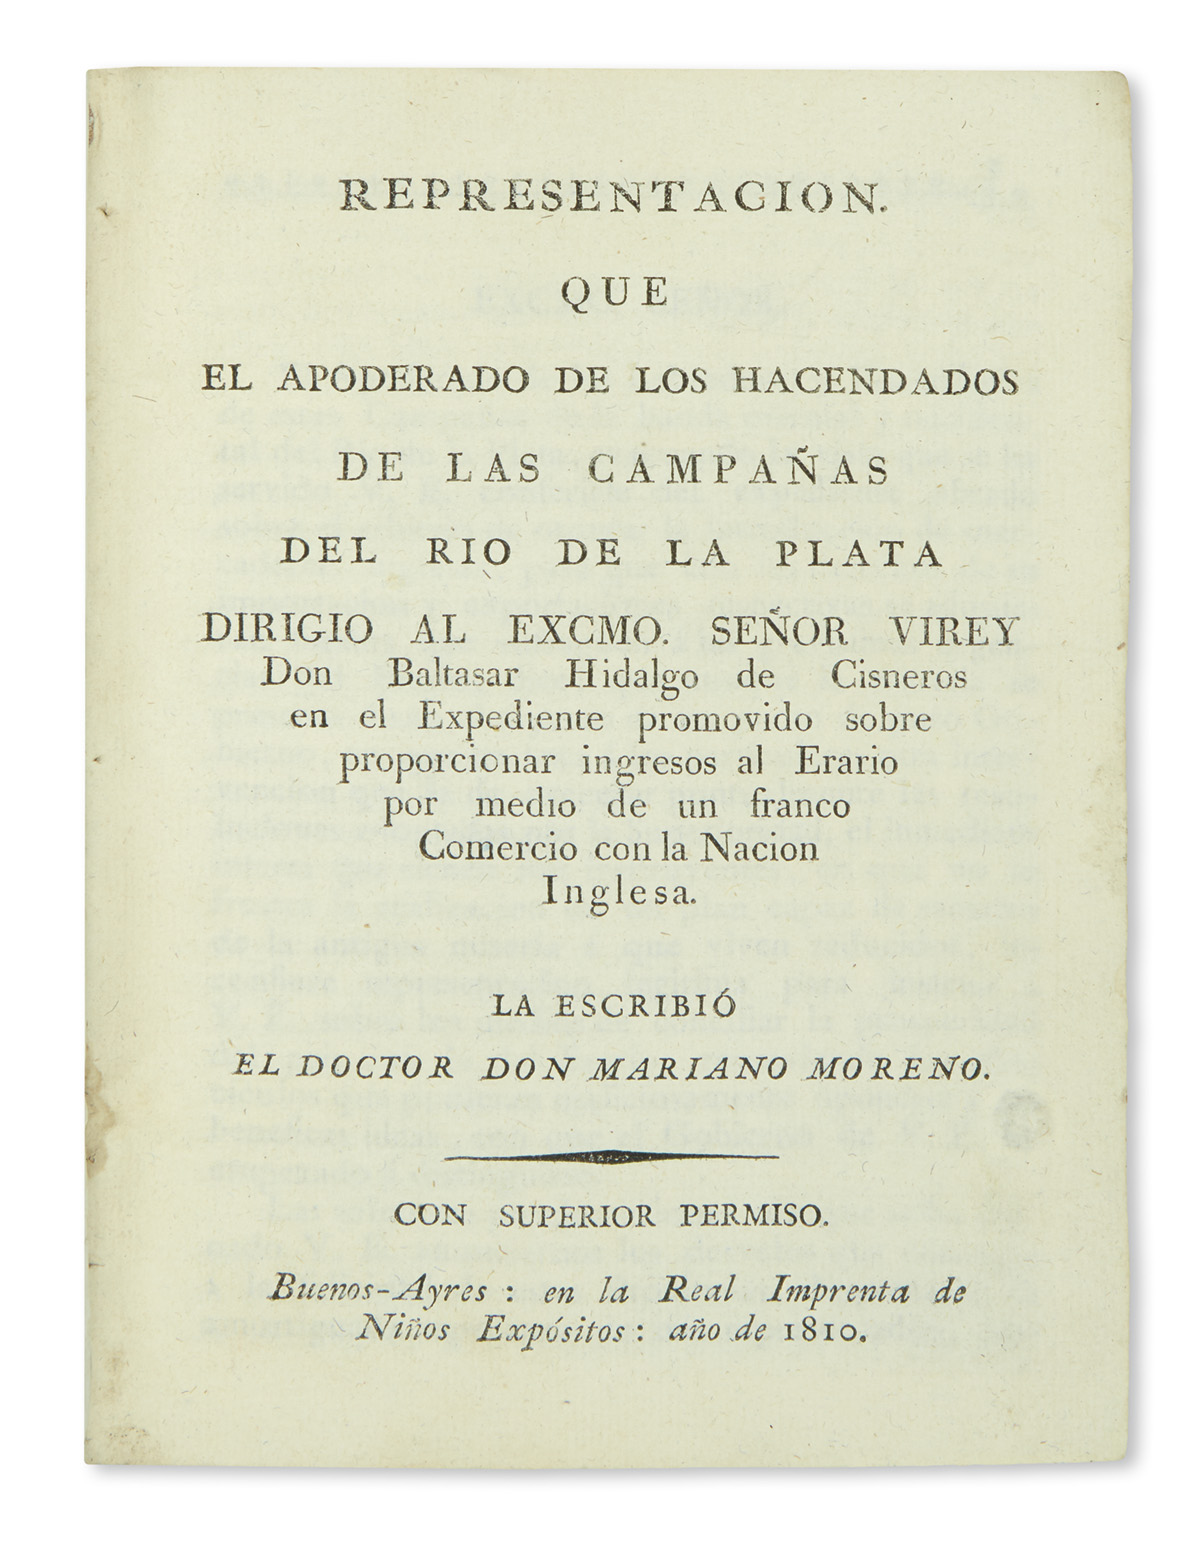 (ARGENTINA.) Compilation of works printed in Buenos Aires in 1810, including Morenos important Representacion.